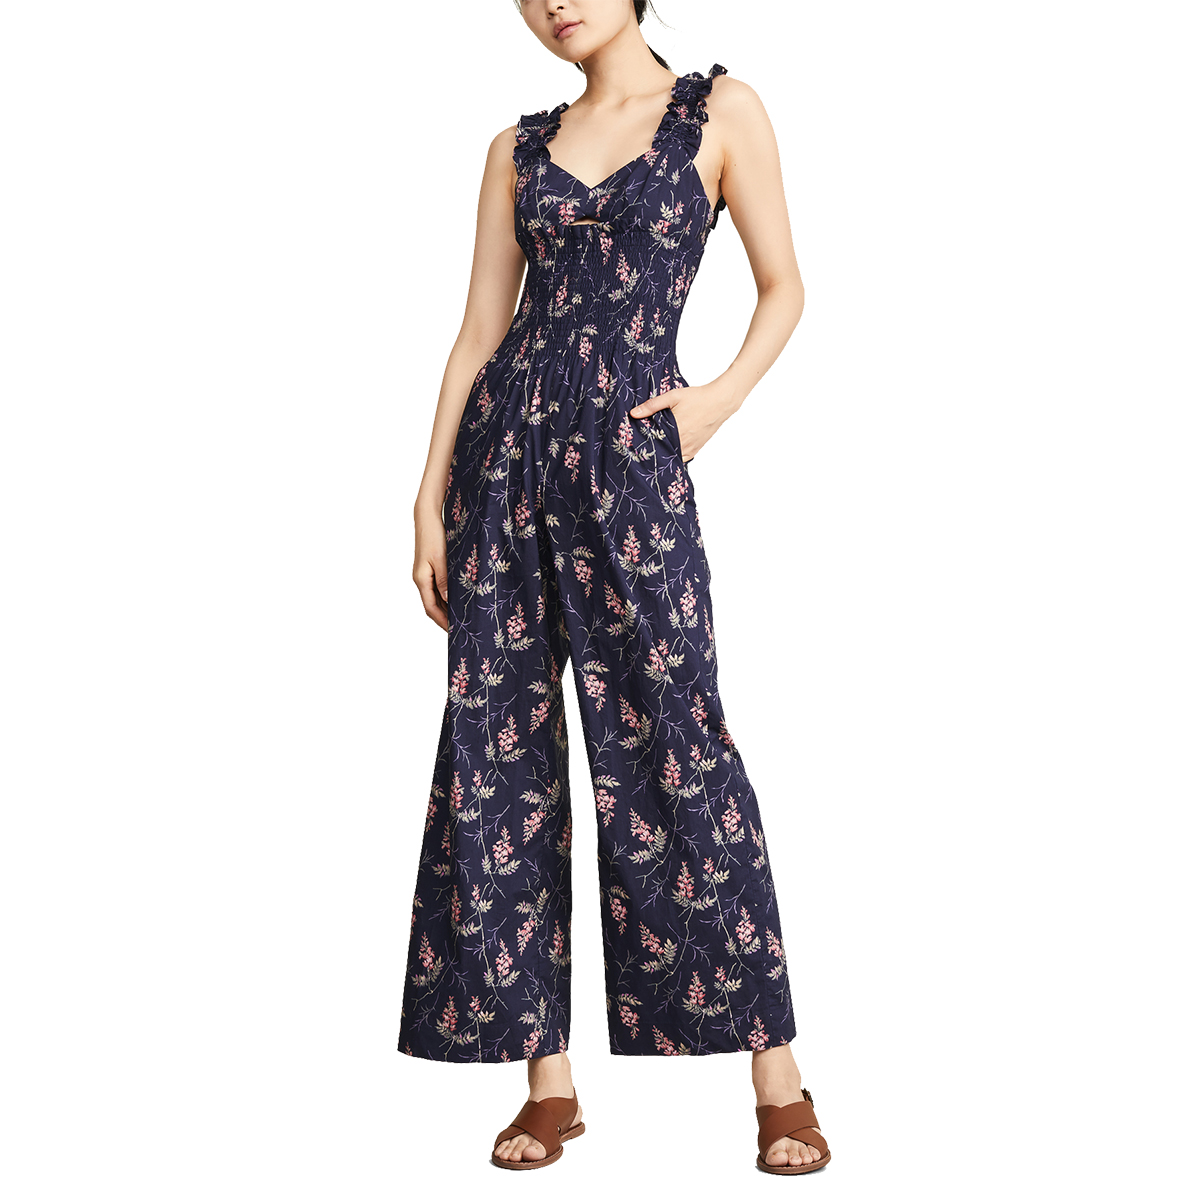 79e70b53805f The 17 Best Jumpsuits for Women 2019